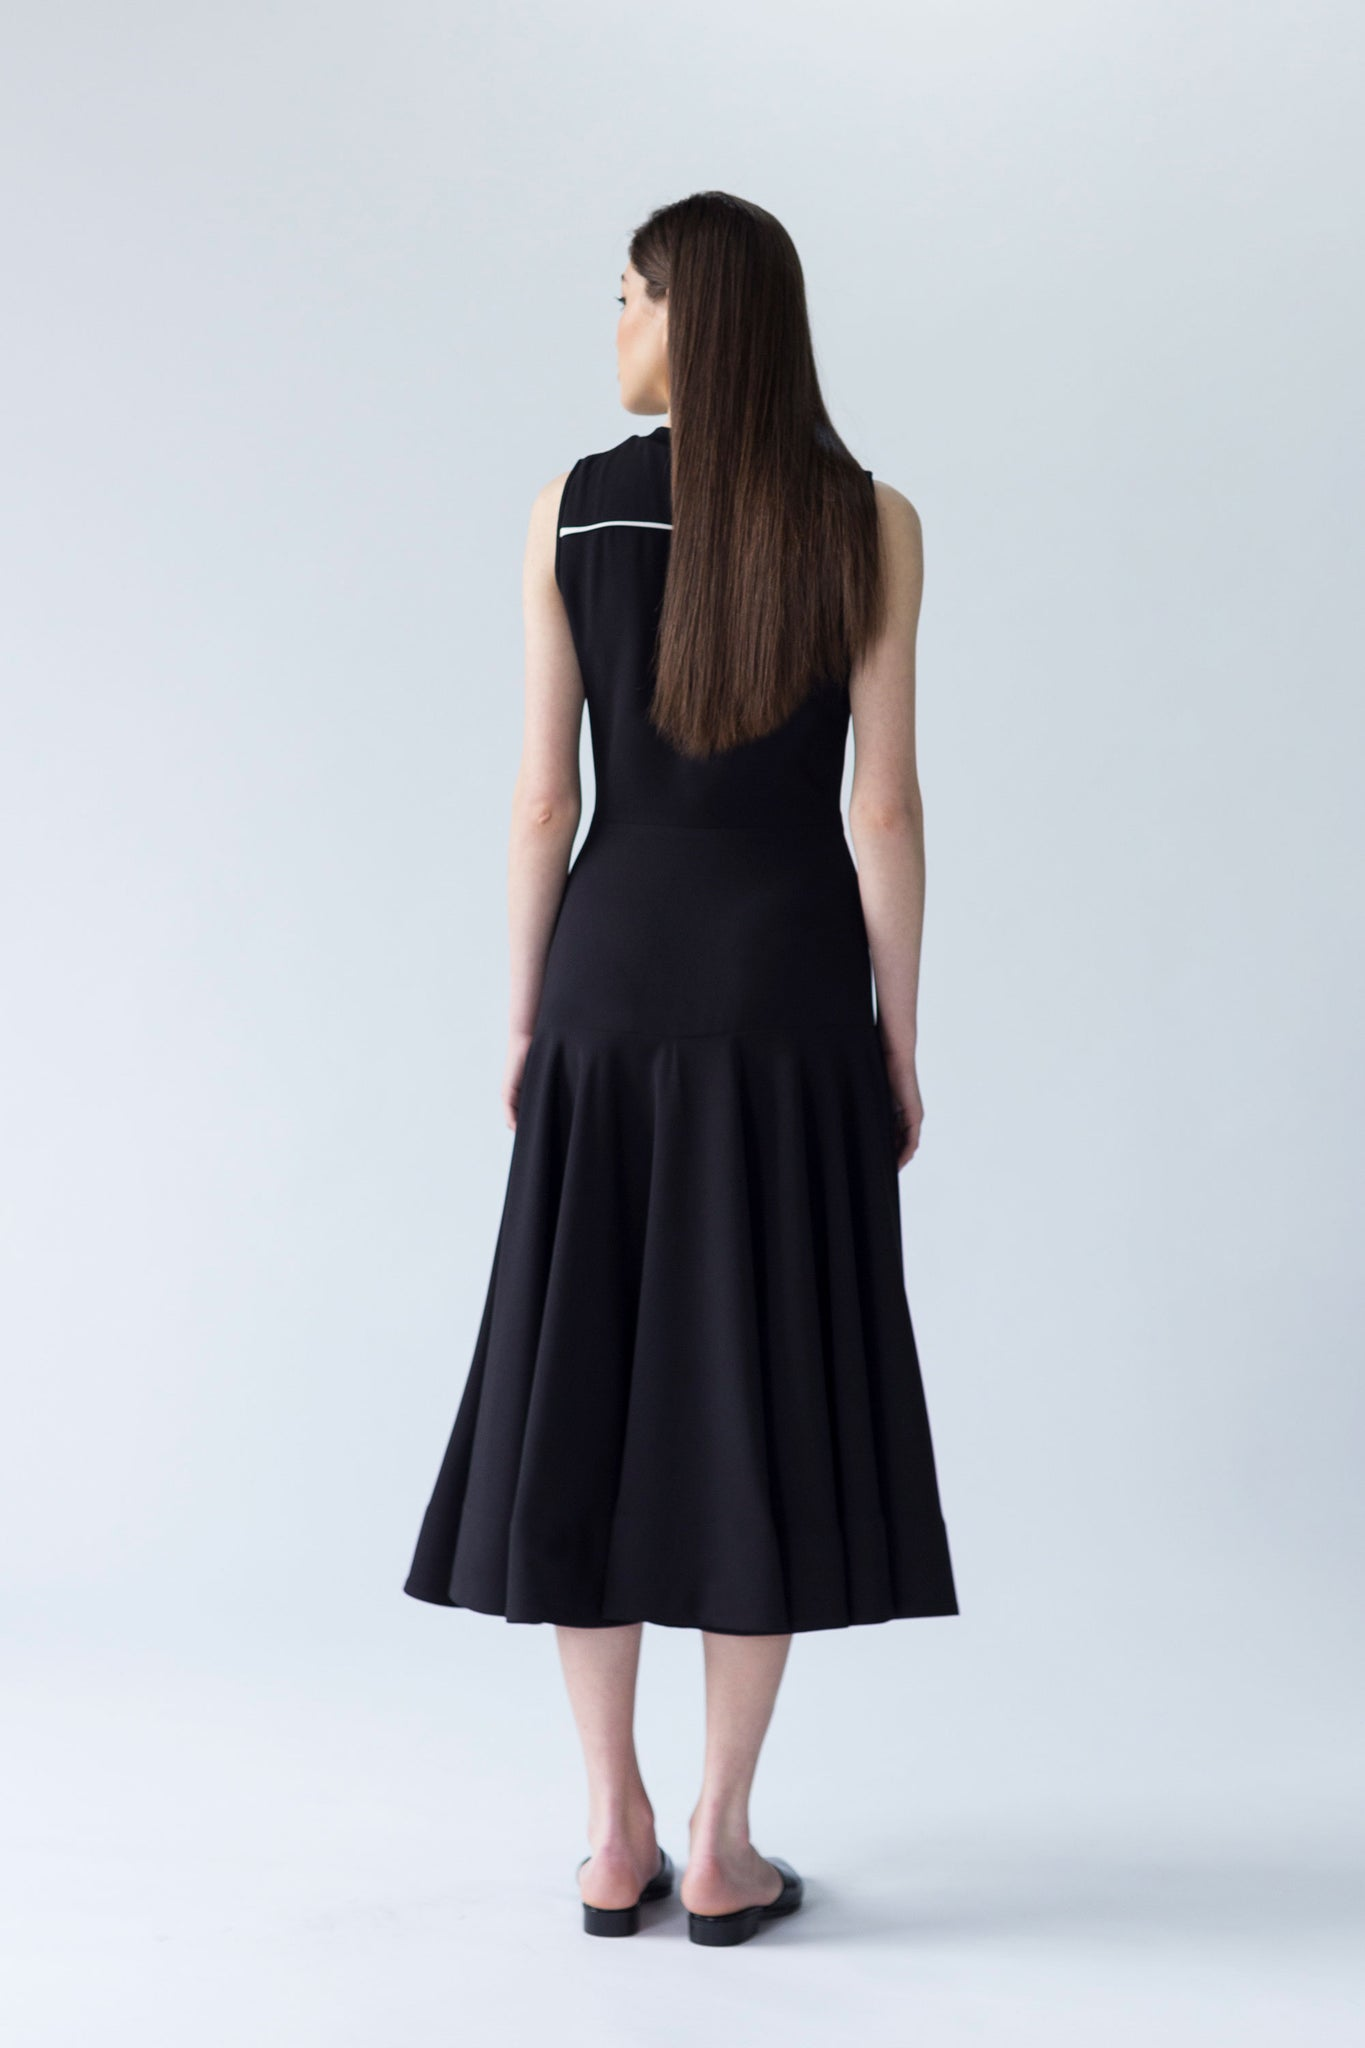 CONTRAST-TRIM CREPE DRESS WITH KNIT RIB NECKLINE